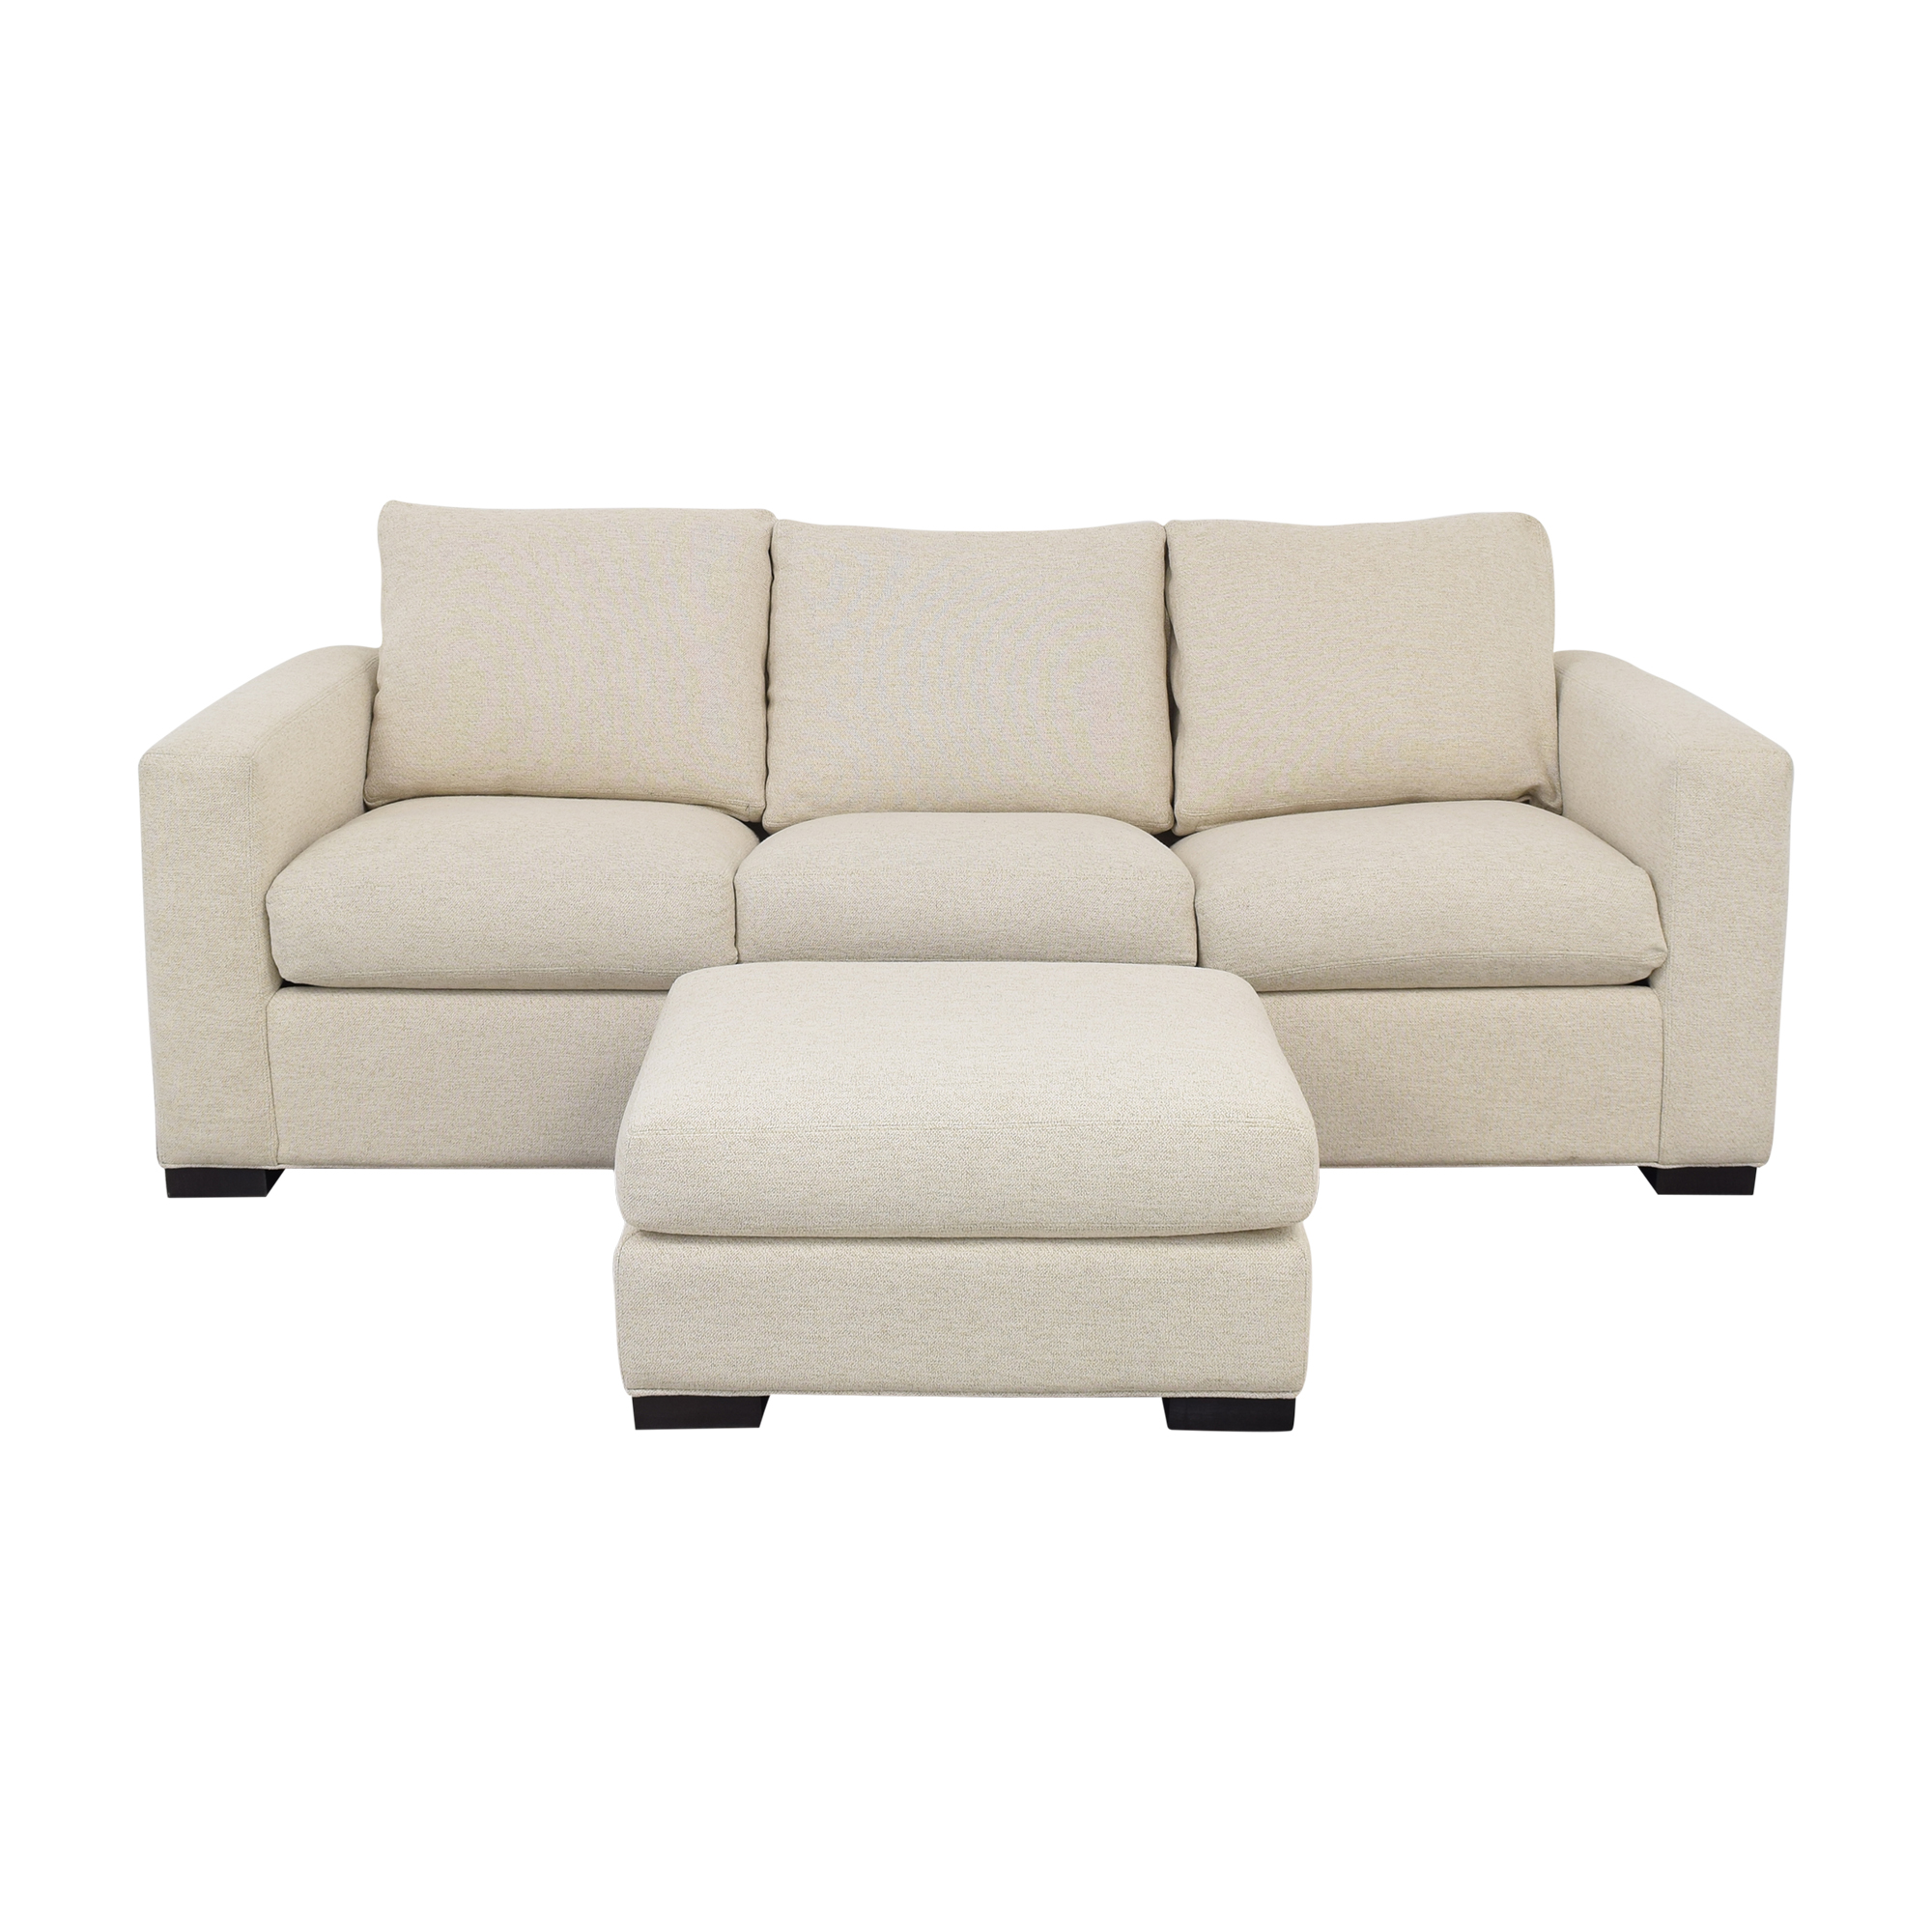 Room & Board Room & Board Queen Sleeper Sofa with Ottoman on sale